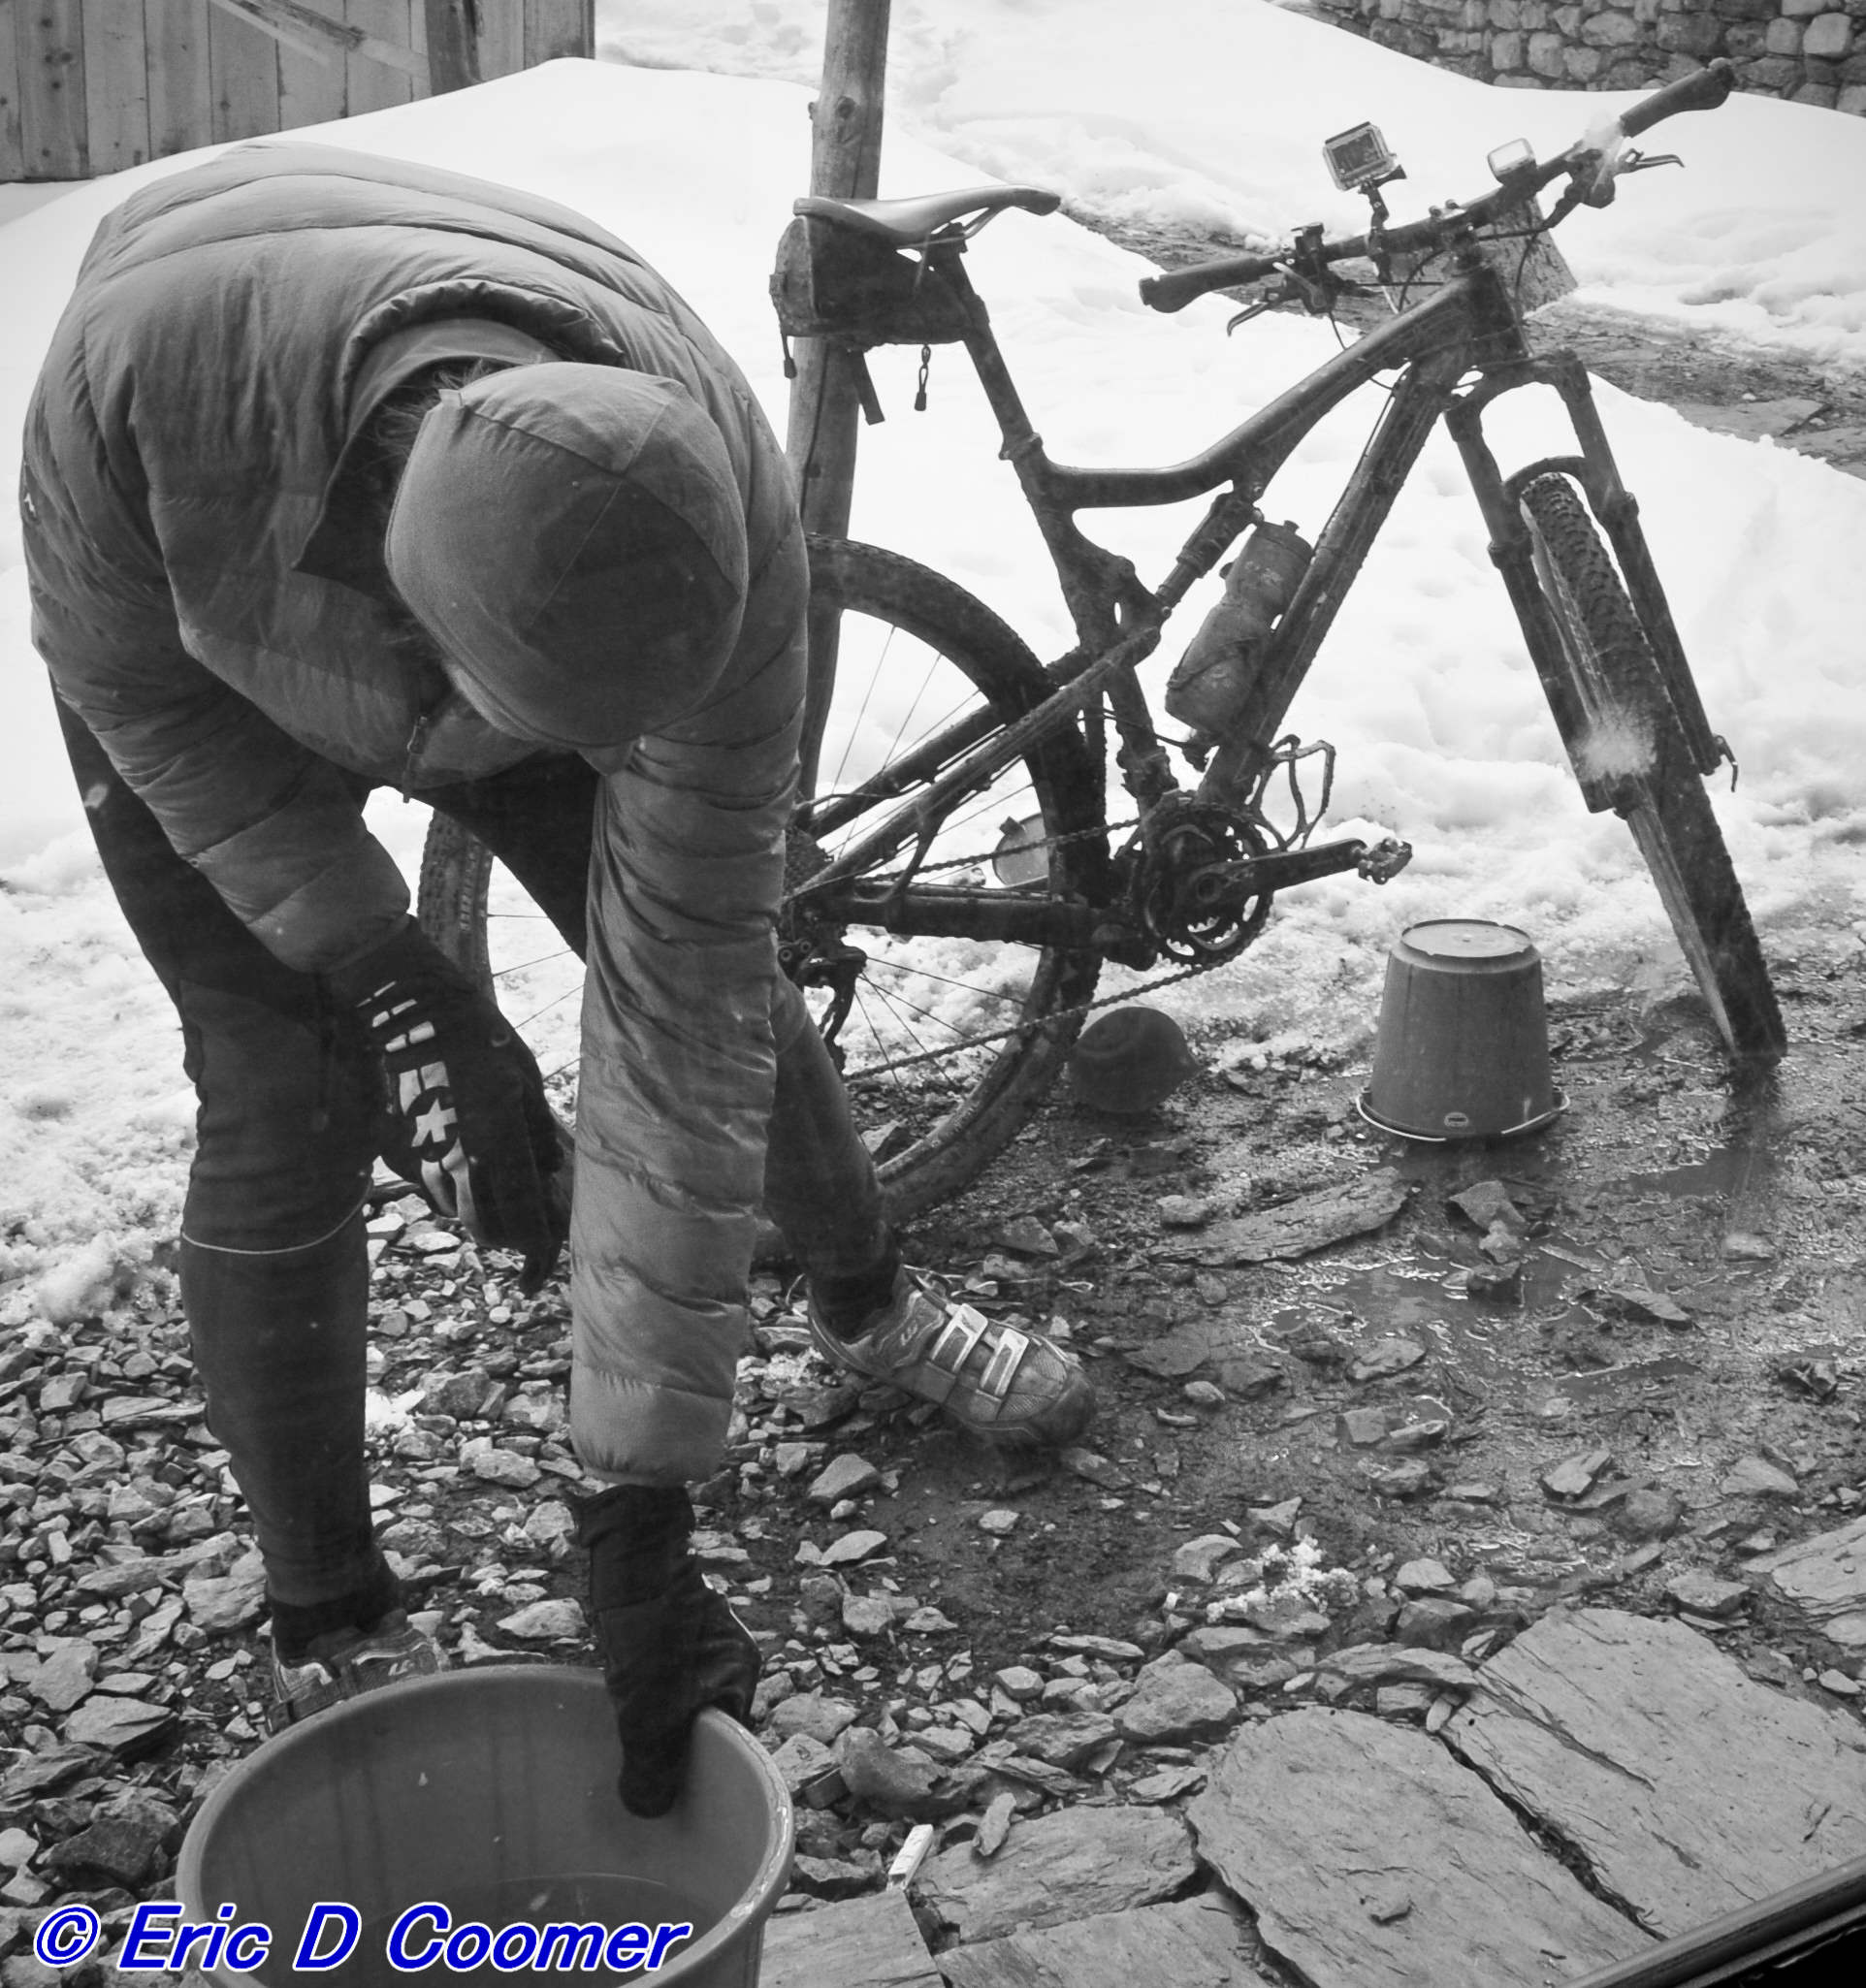 Bike cleaning at 14,500'... My friend here did not have Pro Towels, and i didn't have any more to spare